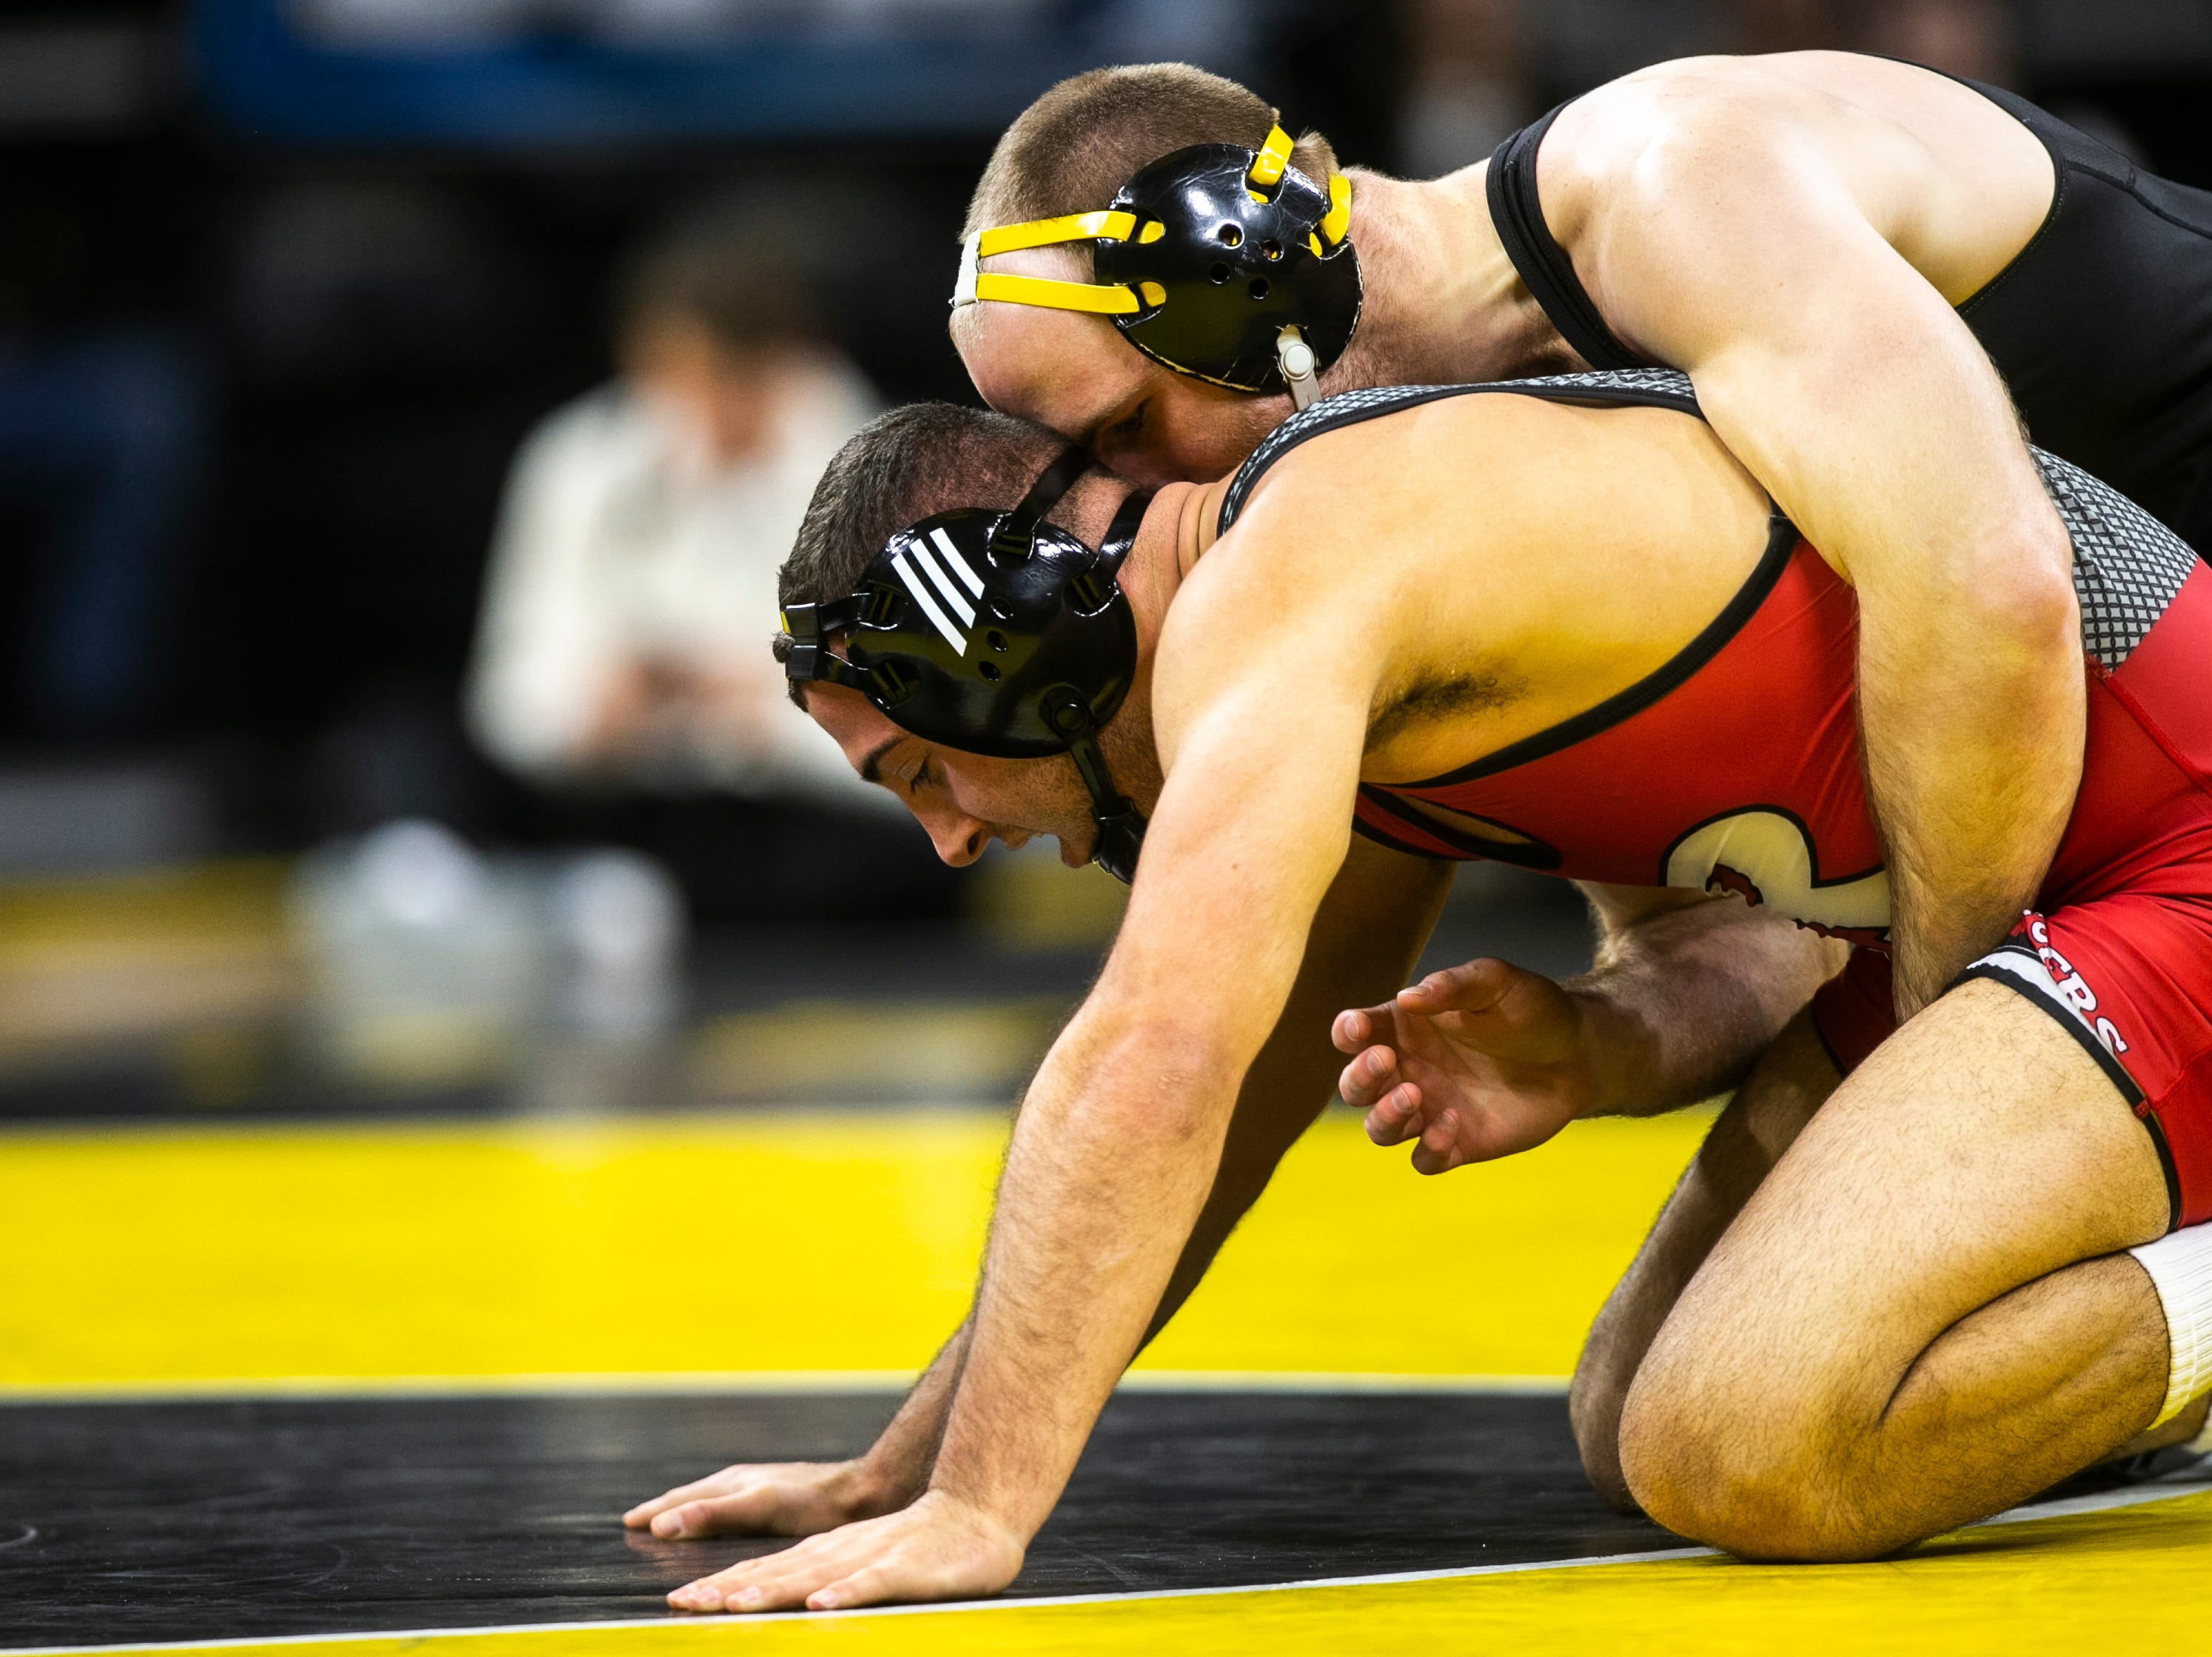 Iowa's Alex Marinelli, top, wrestles Rutgers' Anthony Oliveri at 165 during a NCAA Big Ten Conference wrestling dual on Friday, Jan. 18, 2019, at Carver-Hawkeye Arena in Iowa City, Iowa.